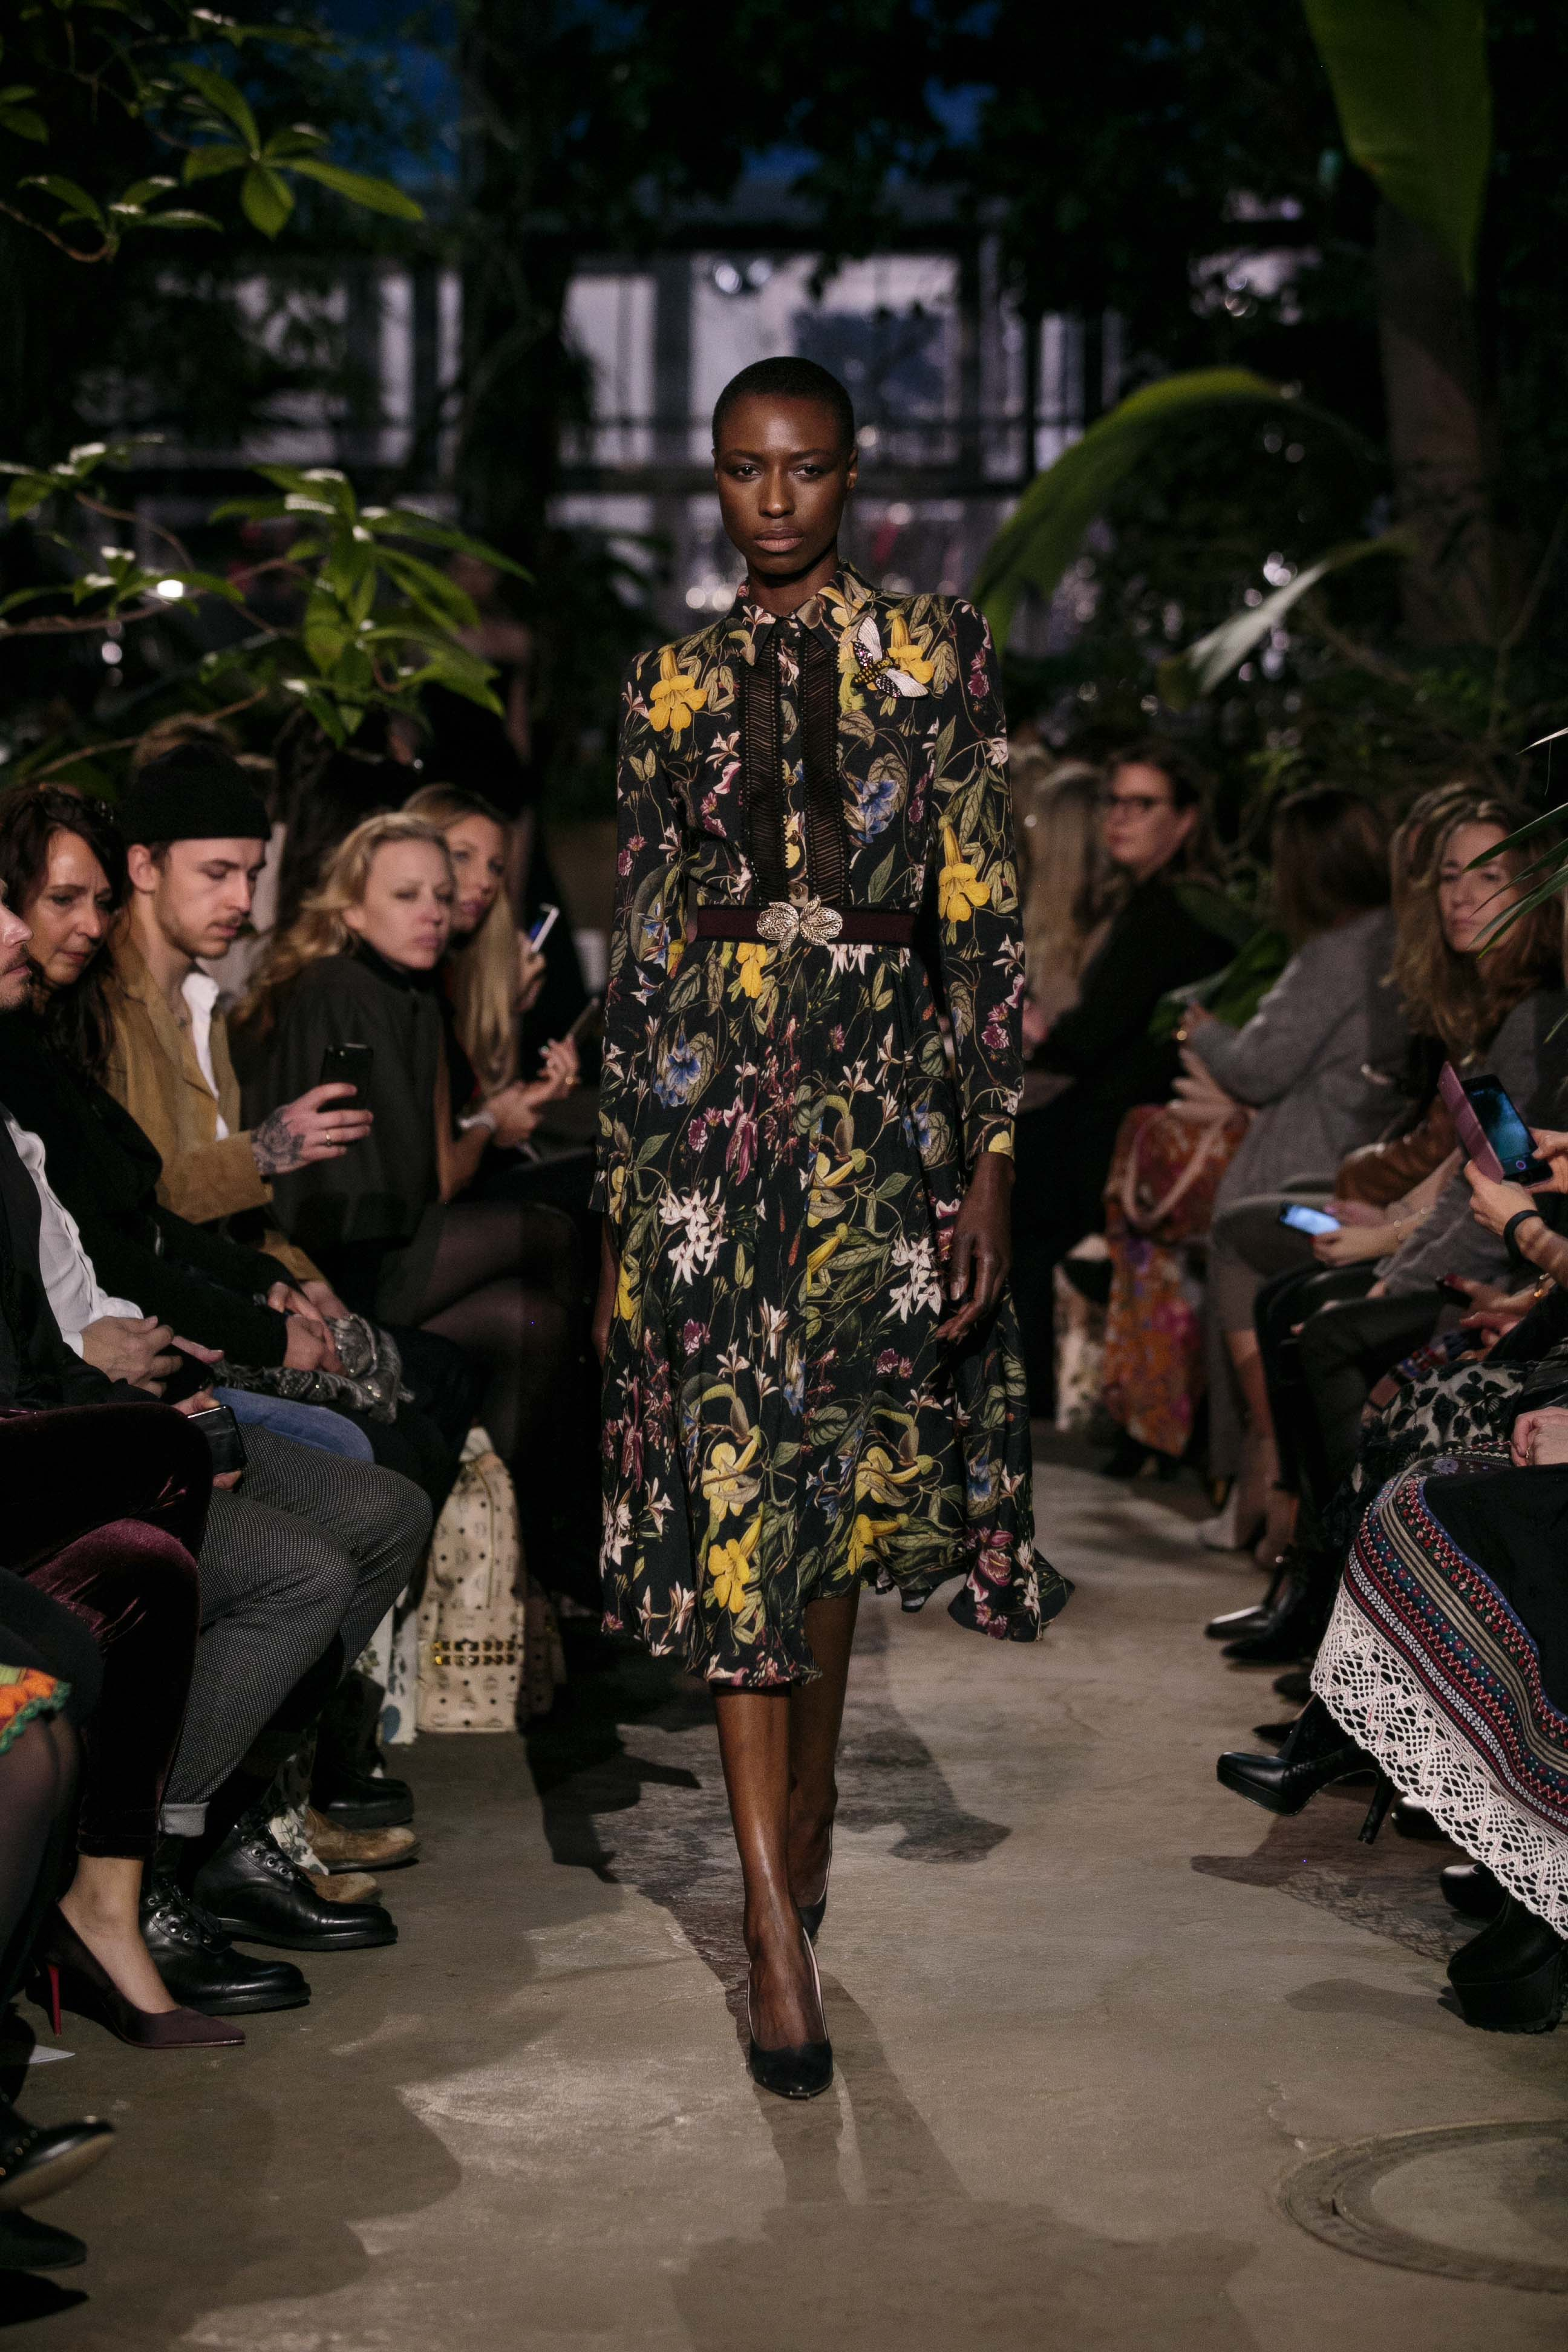 Herbst winter Trends 2018 Floral Prints Modeblog Lena Hoschek RUNWAY AUTUMN WINTER 2018 2019 WINTERGARDEN 2